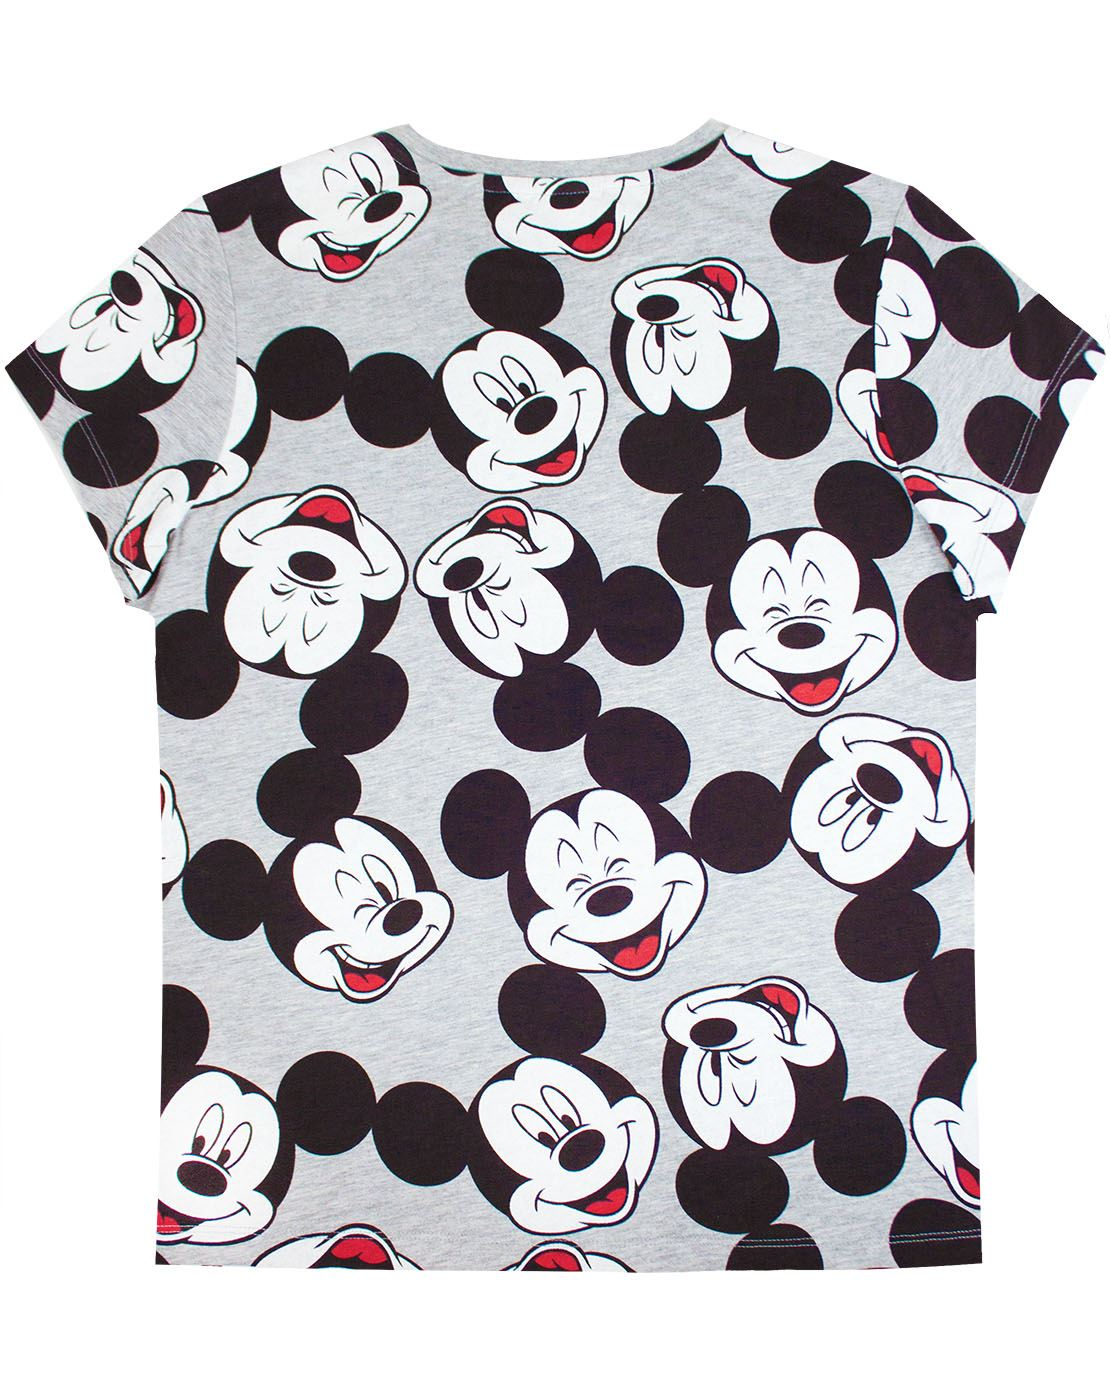 Disney-Mickey-Mouse-Character-All-Over-Women-039-s-Ladies-Boyfriend-Fit-T-Shirt thumbnail 2